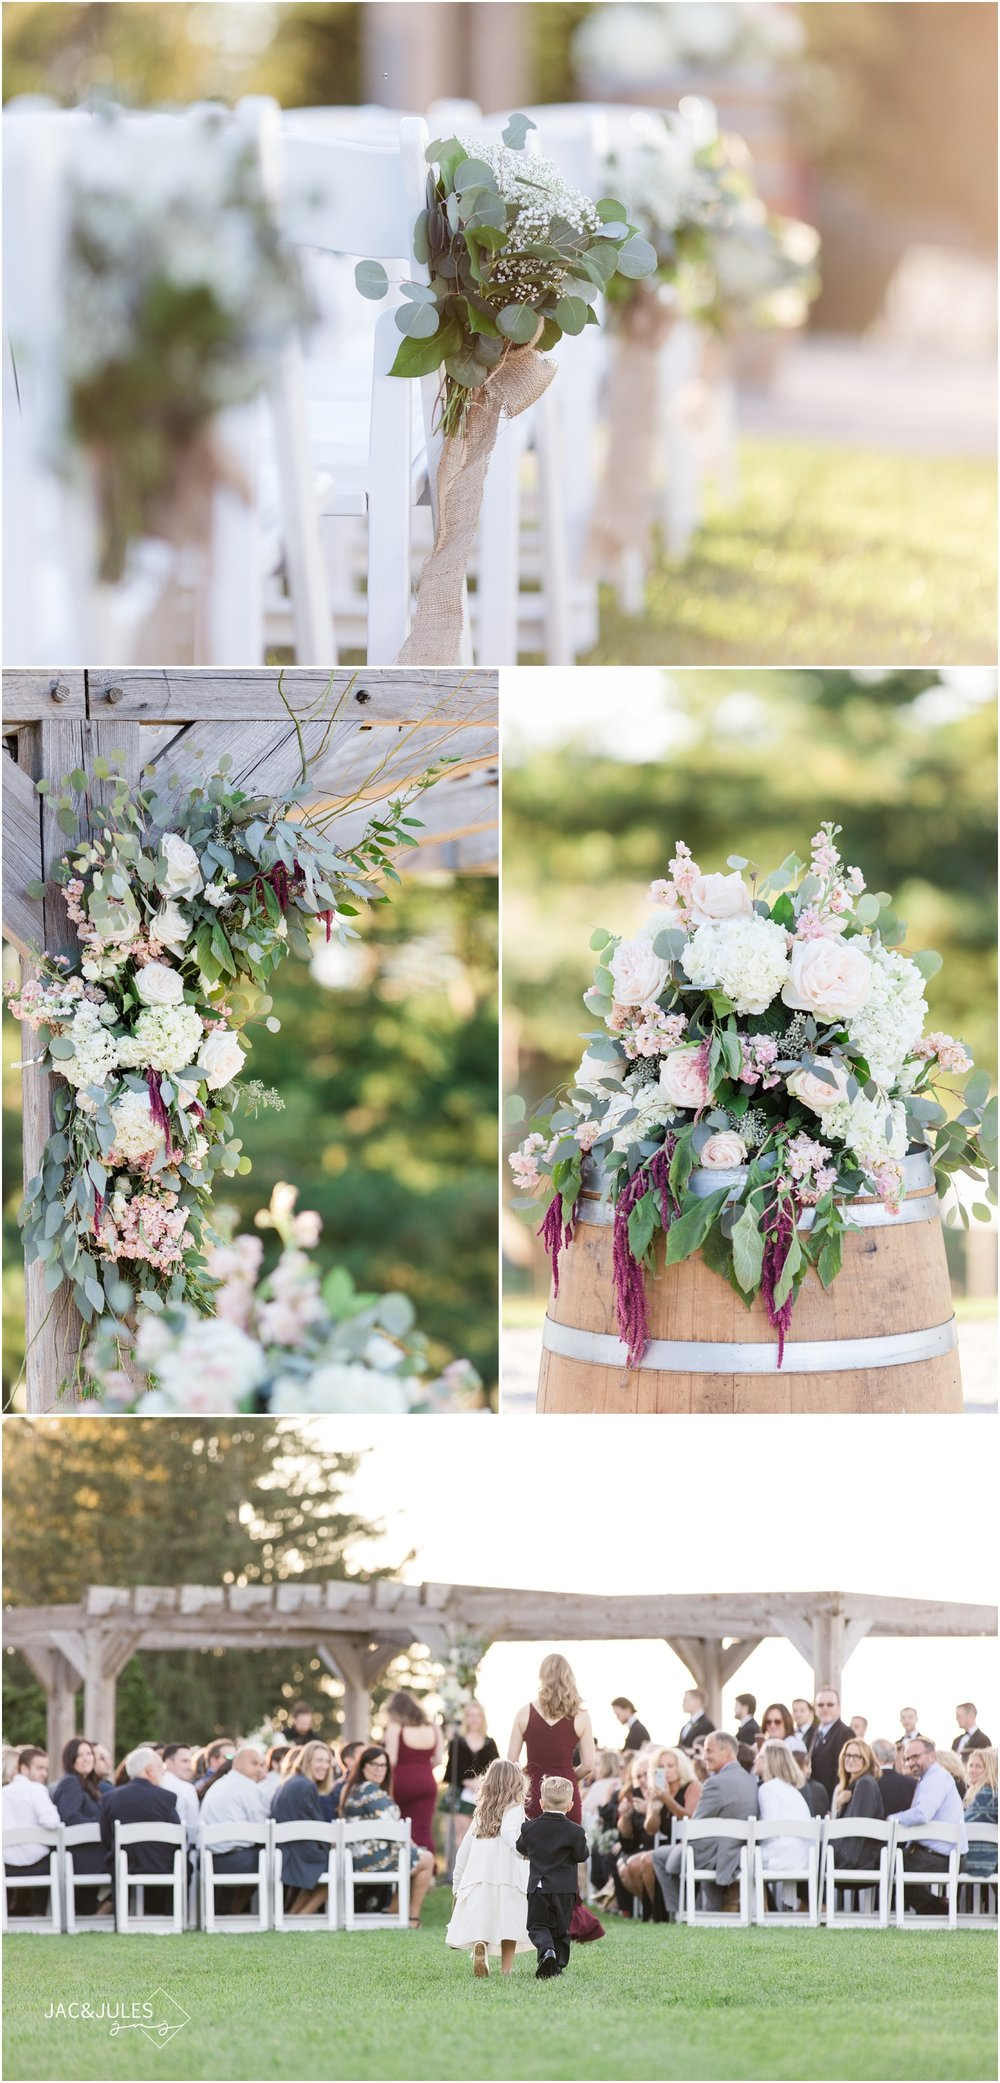 Outdoor wedding ceremony decor and florals at Laurita Winery.